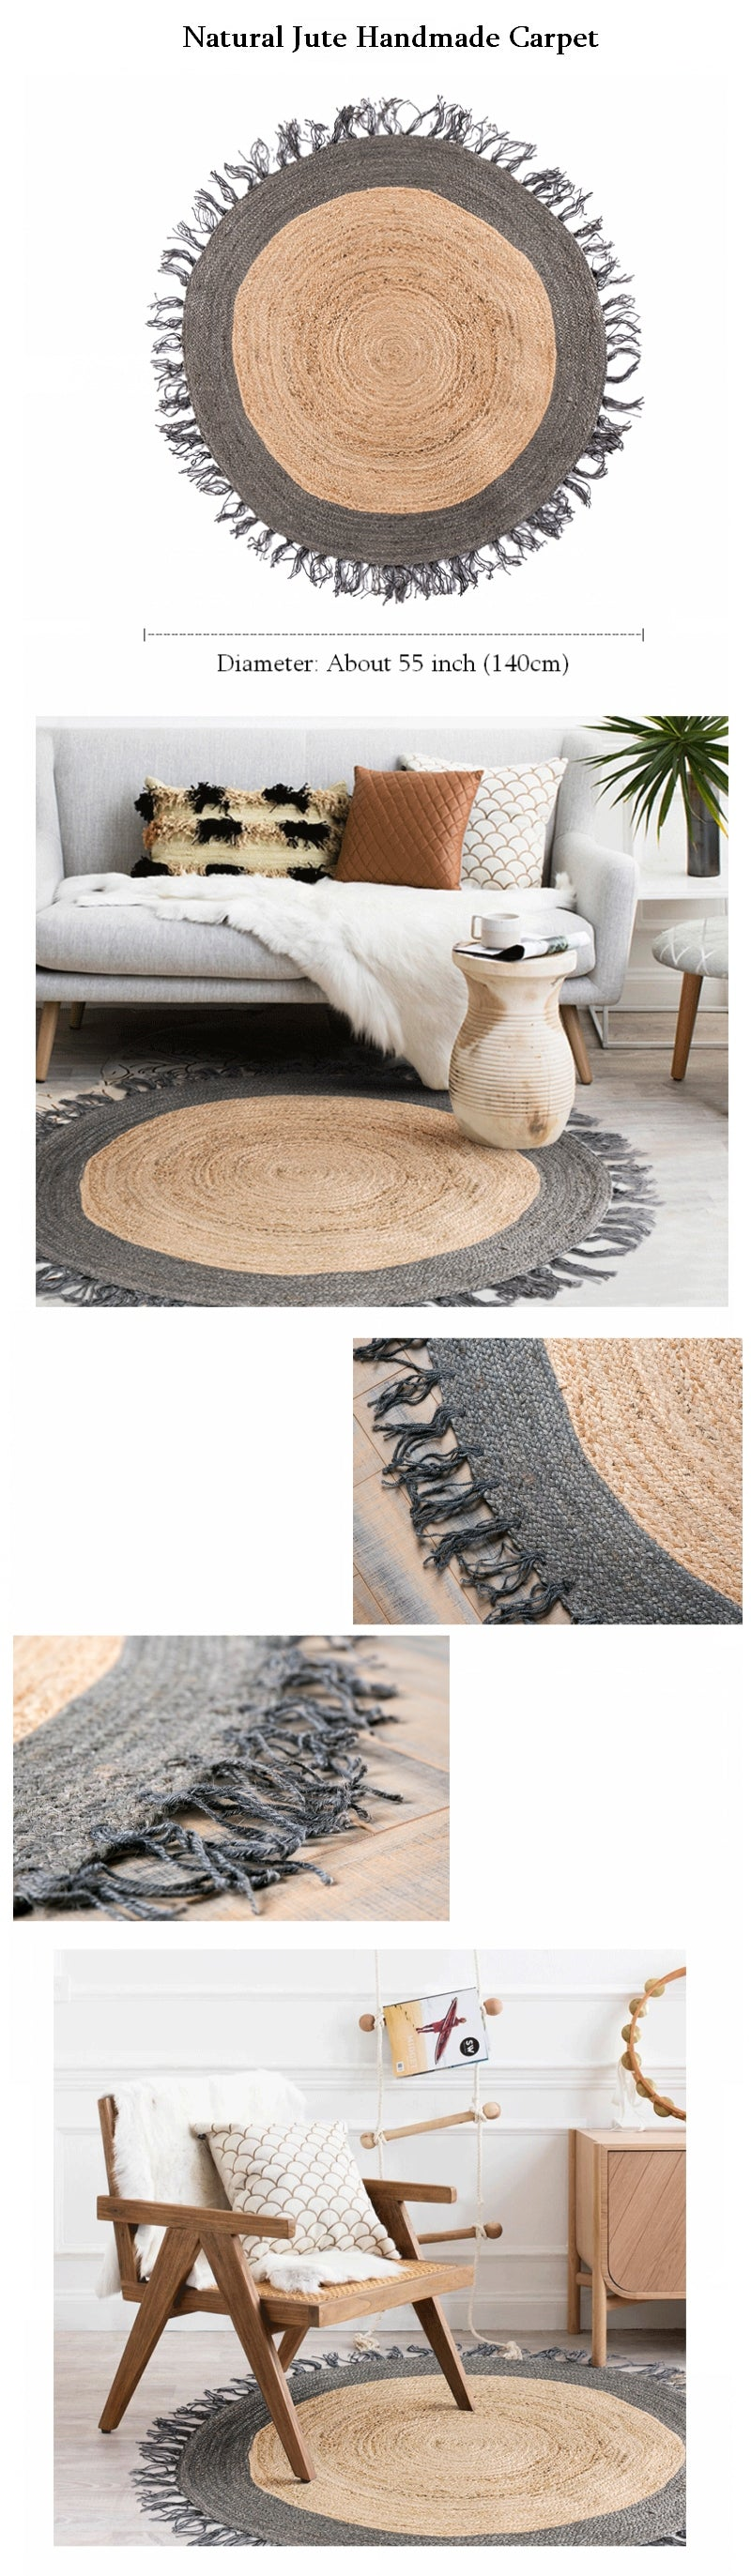 Copy of 100% Handmade Jute Carpet, India Oriental Floor Carpet, Round Area Rug